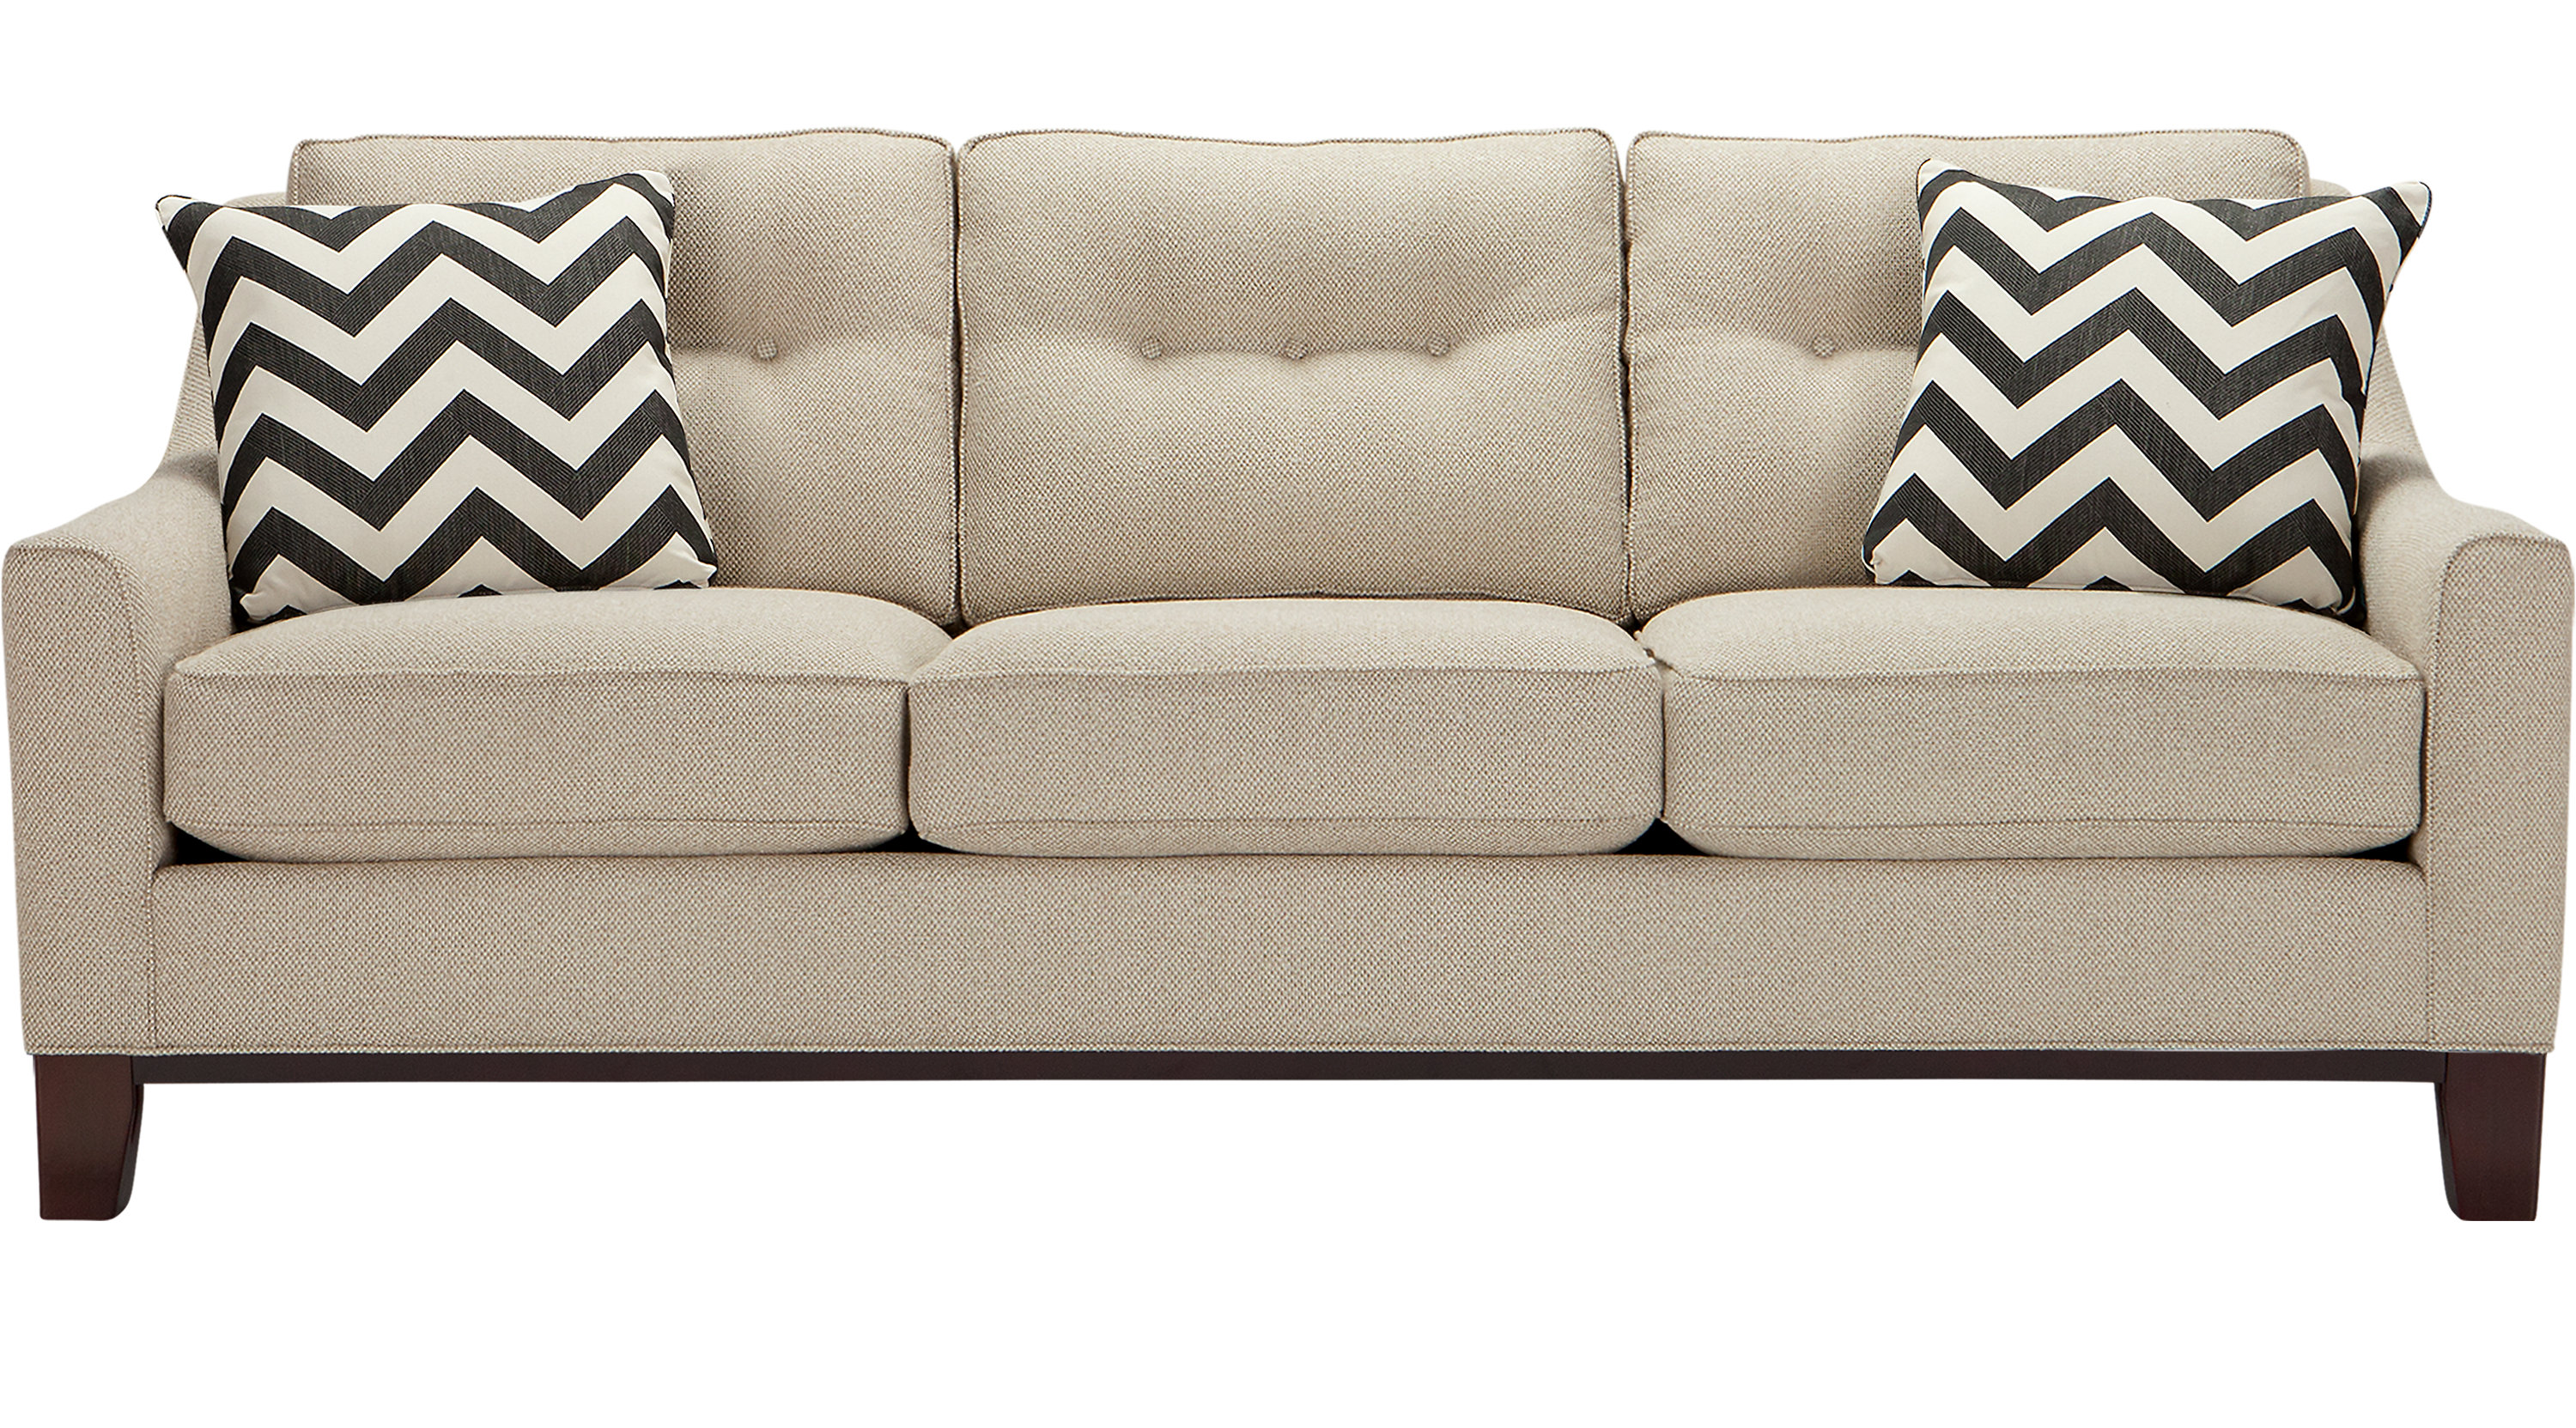 Hadly Beige Sleeper Contemporary Synthetic ~ Cindy Crawford Home Sleeper Sofa